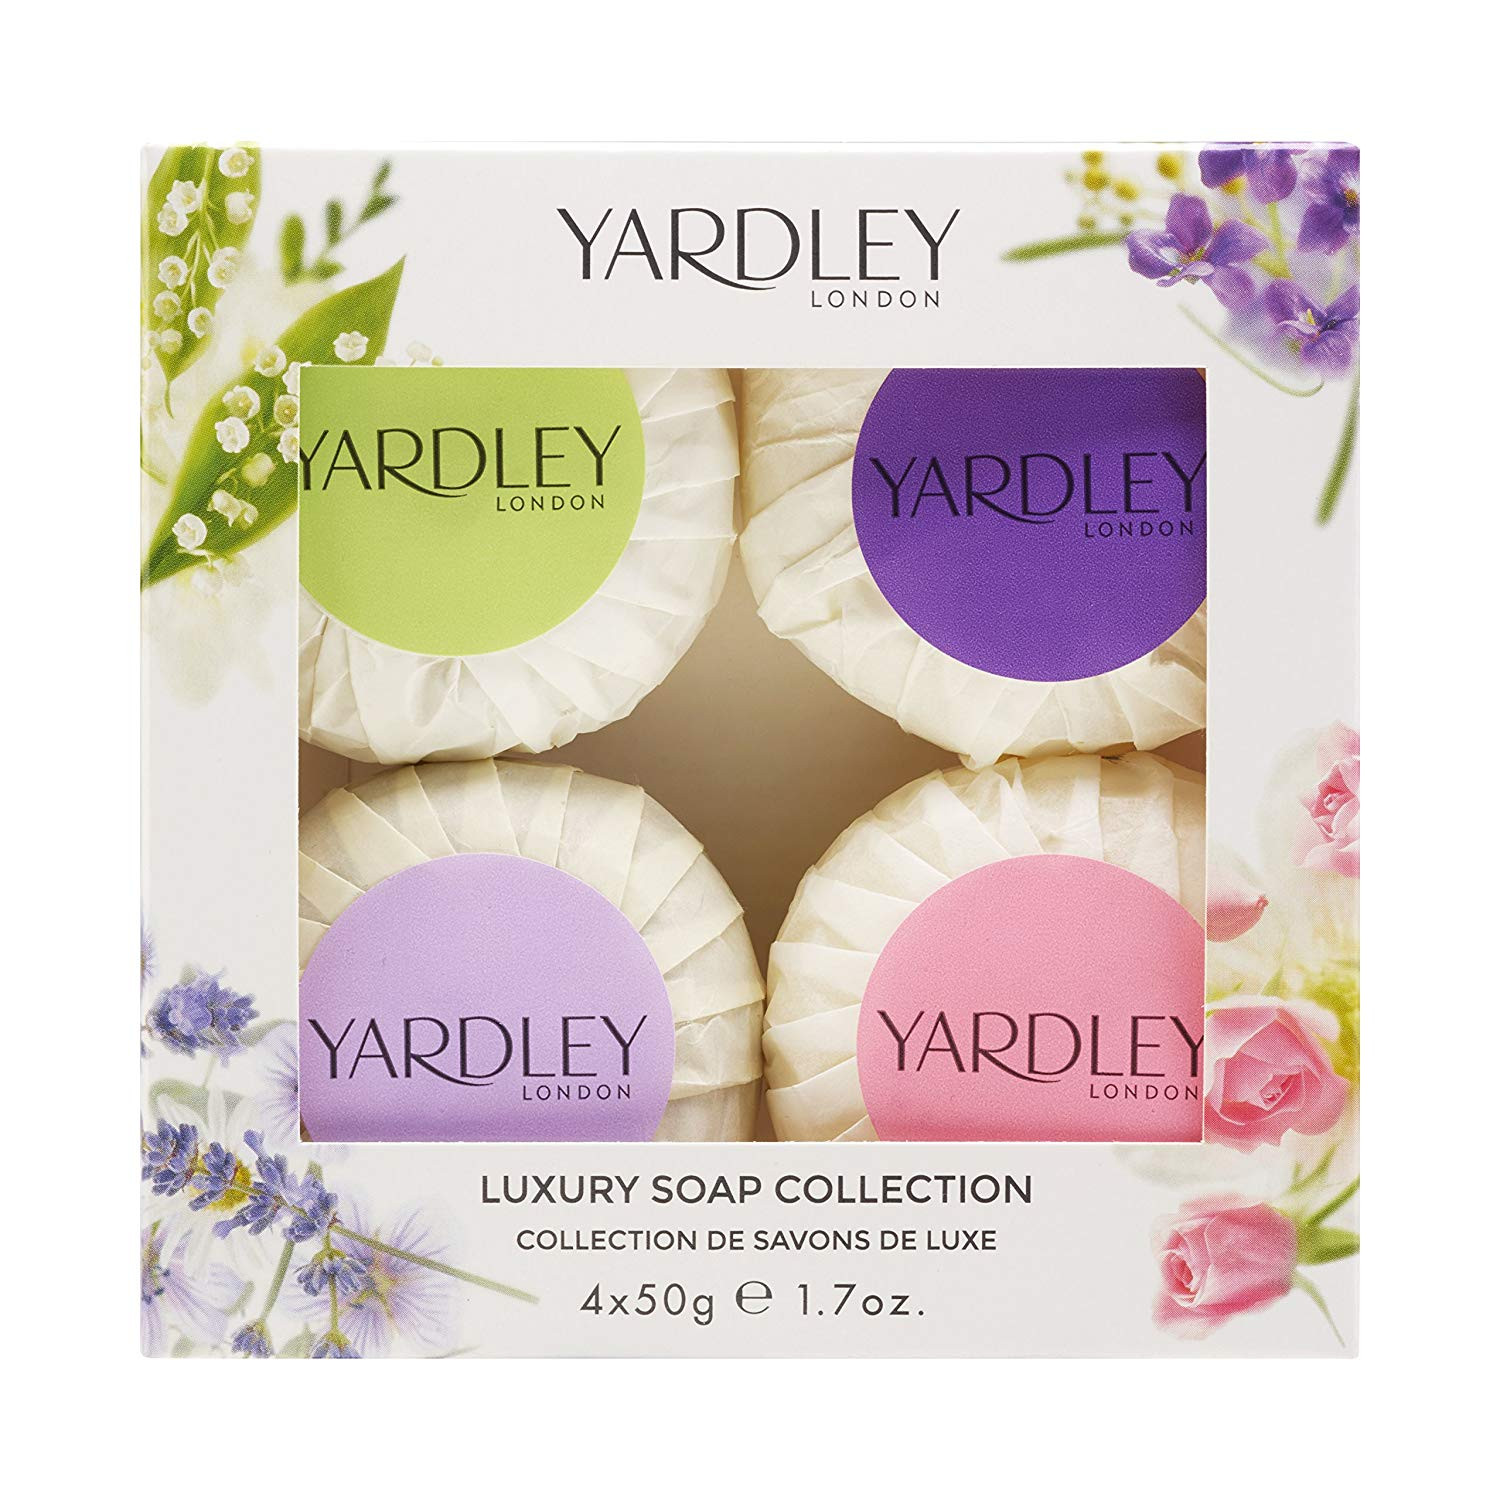 Yardley London Mixed Guest Soap Collection 4 x 50 g Amazon Beauty